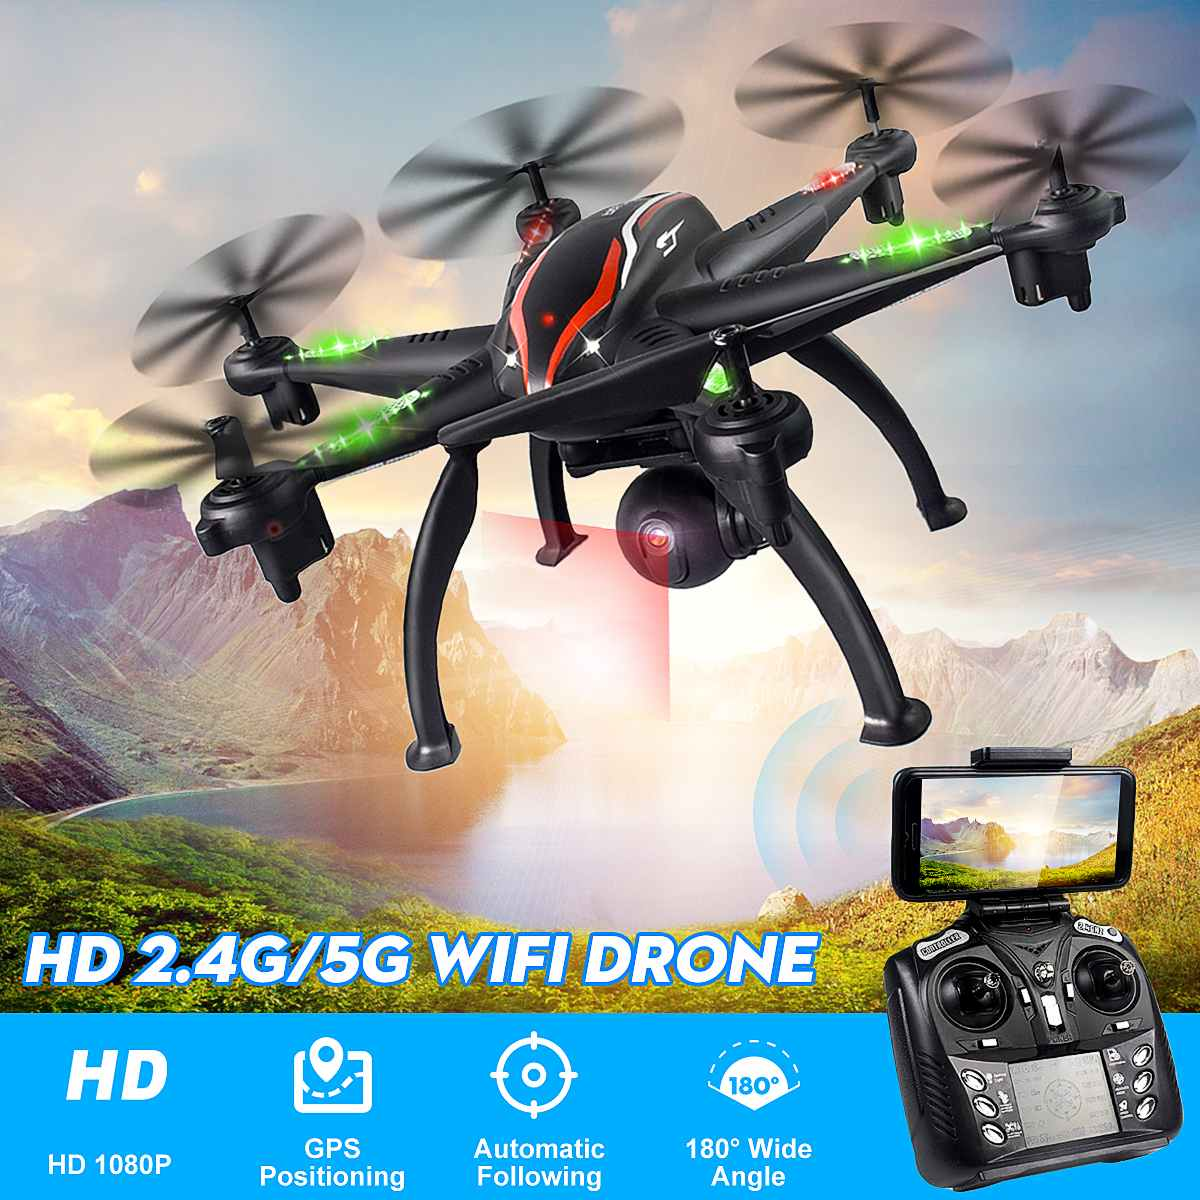 5G WiFi <font><b>Drone</b></font> Aerial Photography RC Camera <font><b>Drone</b></font> <font><b>GPS</b></font> 5G WiFi <font><b>1080P</b></font> Camera Smart Follow Mode 6 Axis Gyro Quadcopter Professional image